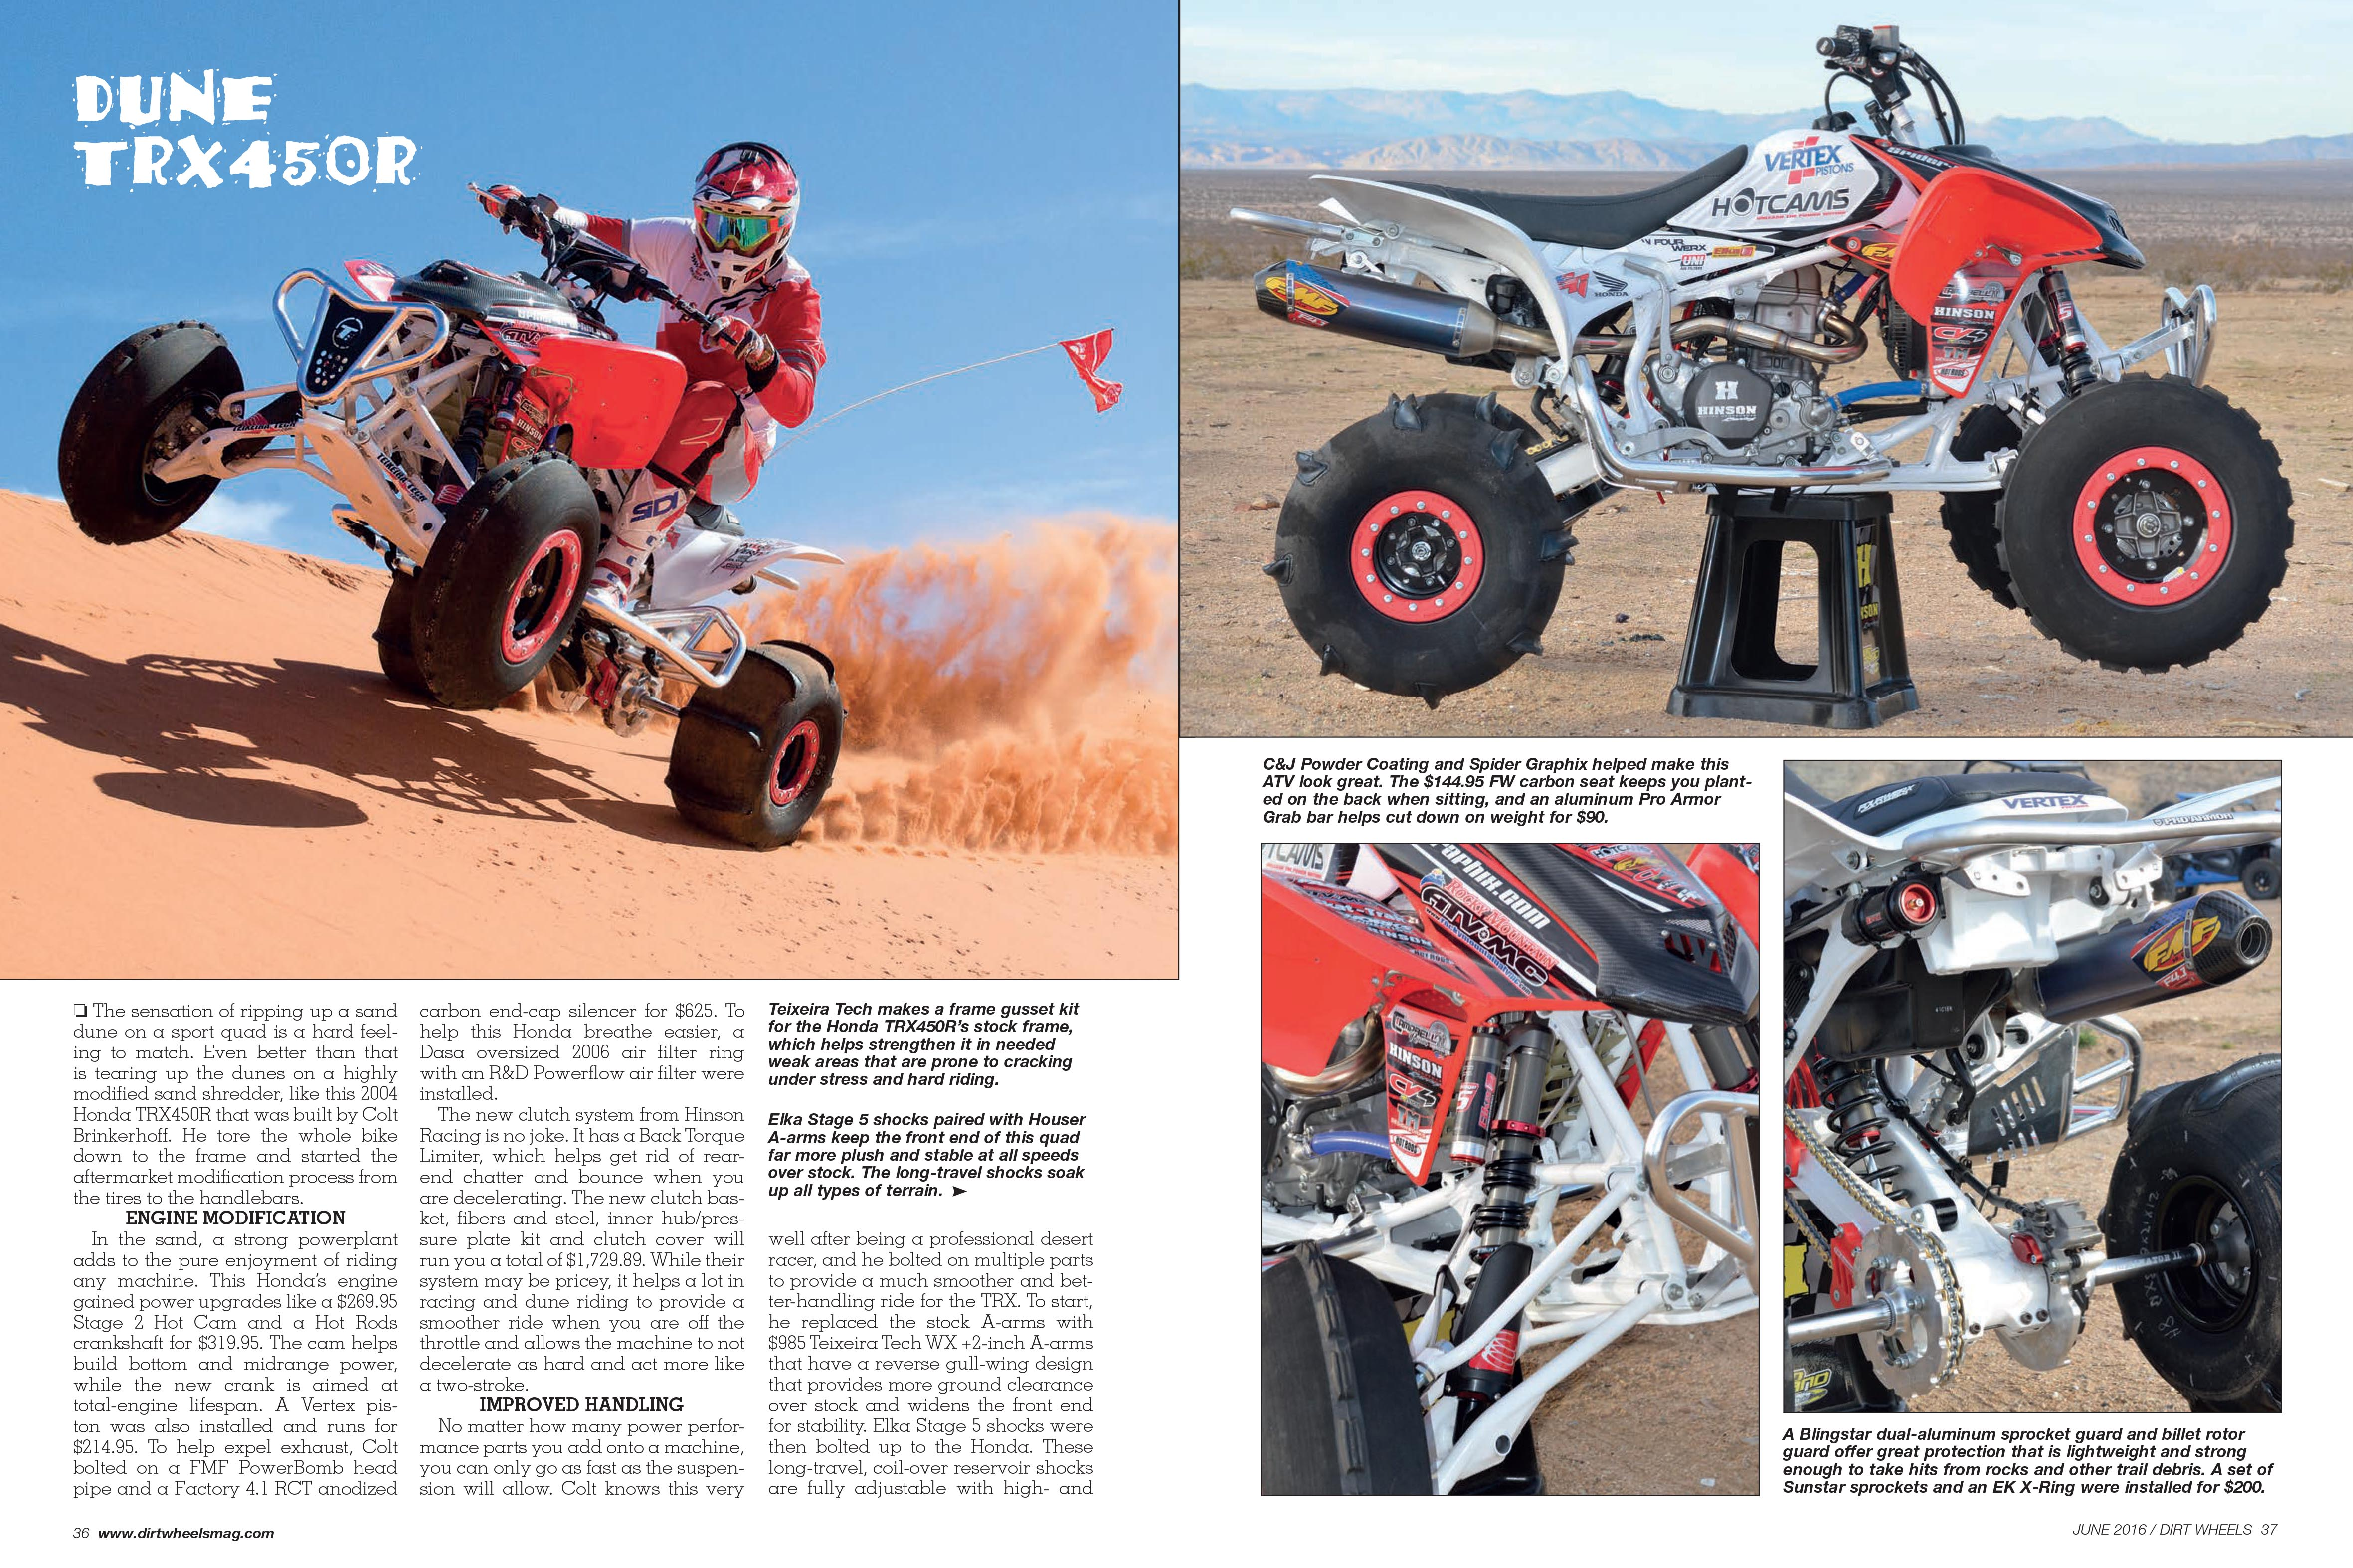 Project Sand TRX450R p34-40.indd